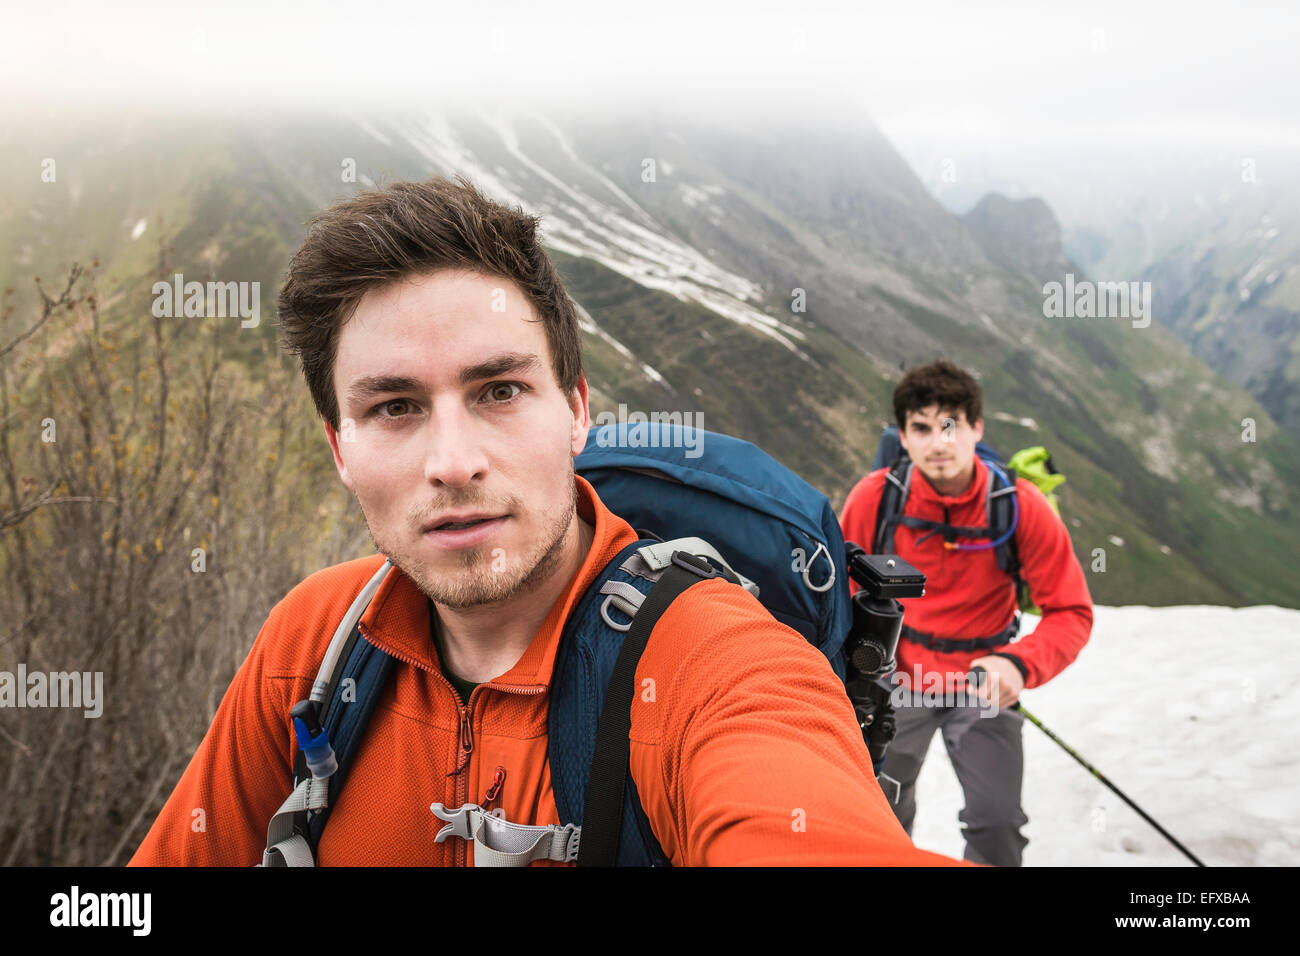 Self portrait of two brothers mountain trekking, Bavarian Alps, Oberstdorf, Bavaria, Germany - Stock Image